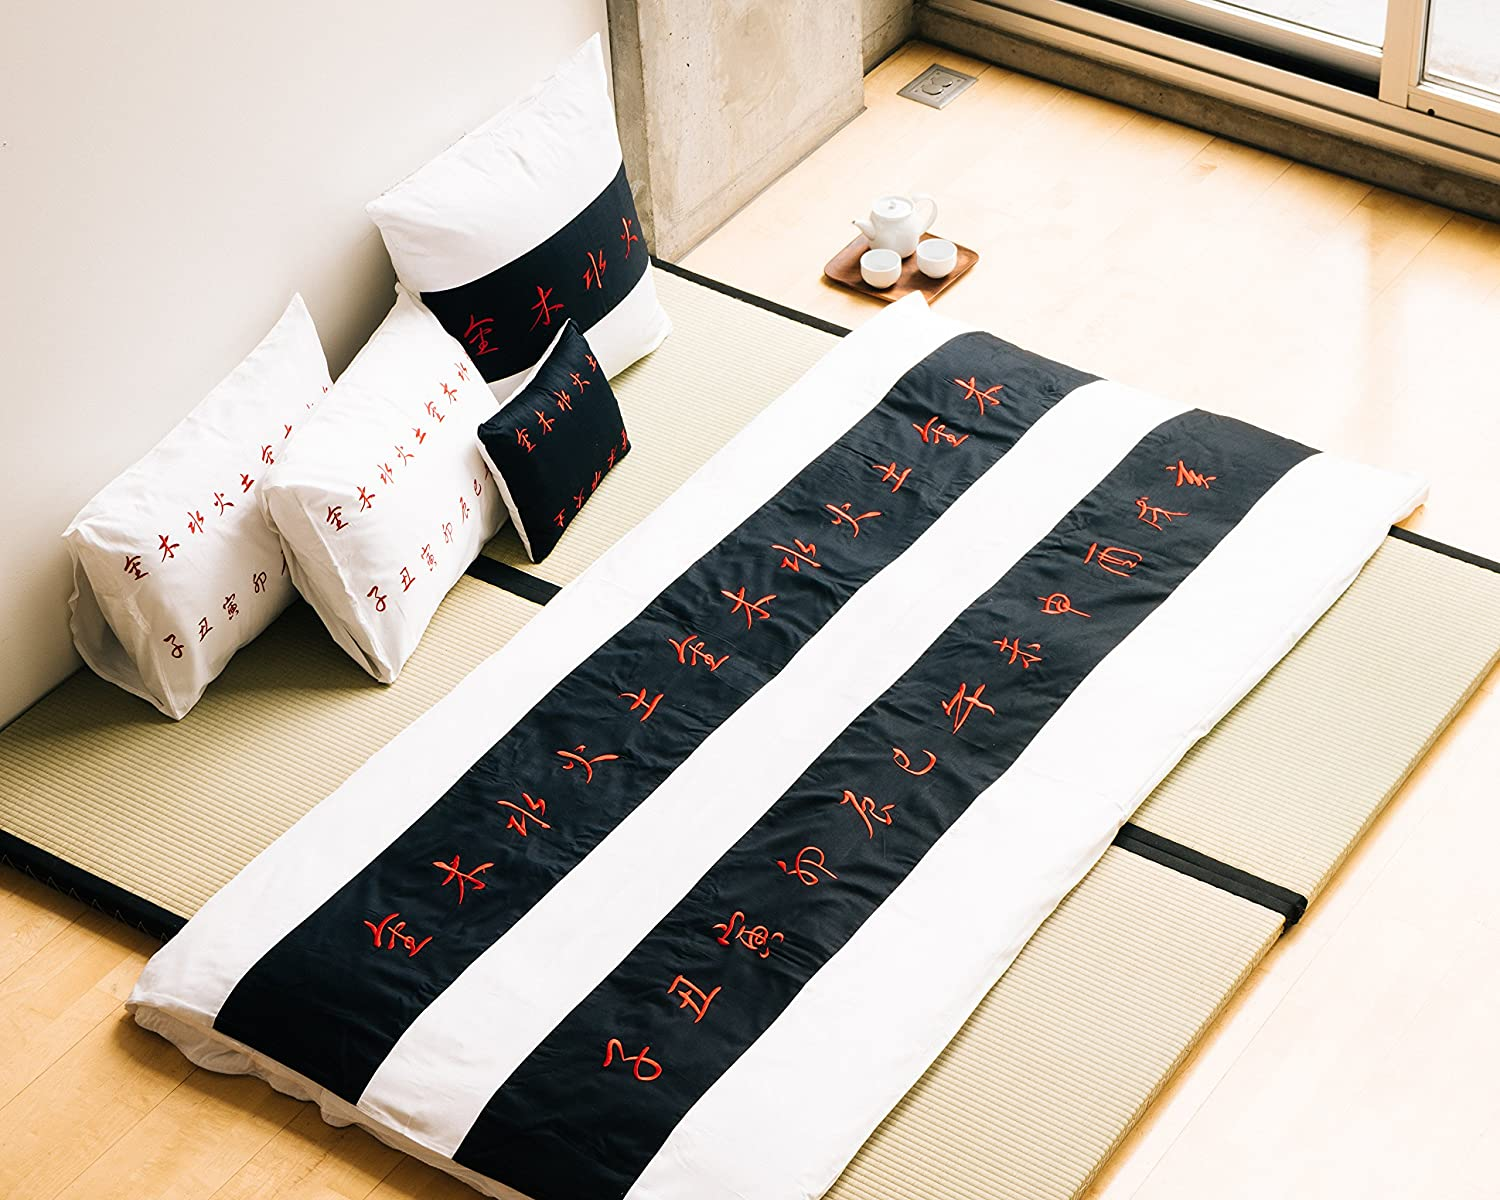 "King size black white and red striped 3 piece Duvet Cover Set, coverlet comforter 106""x92"" with 2 Pillows 20""x36"". Asian inspired decorative artsy design with Chinese calligraphy"